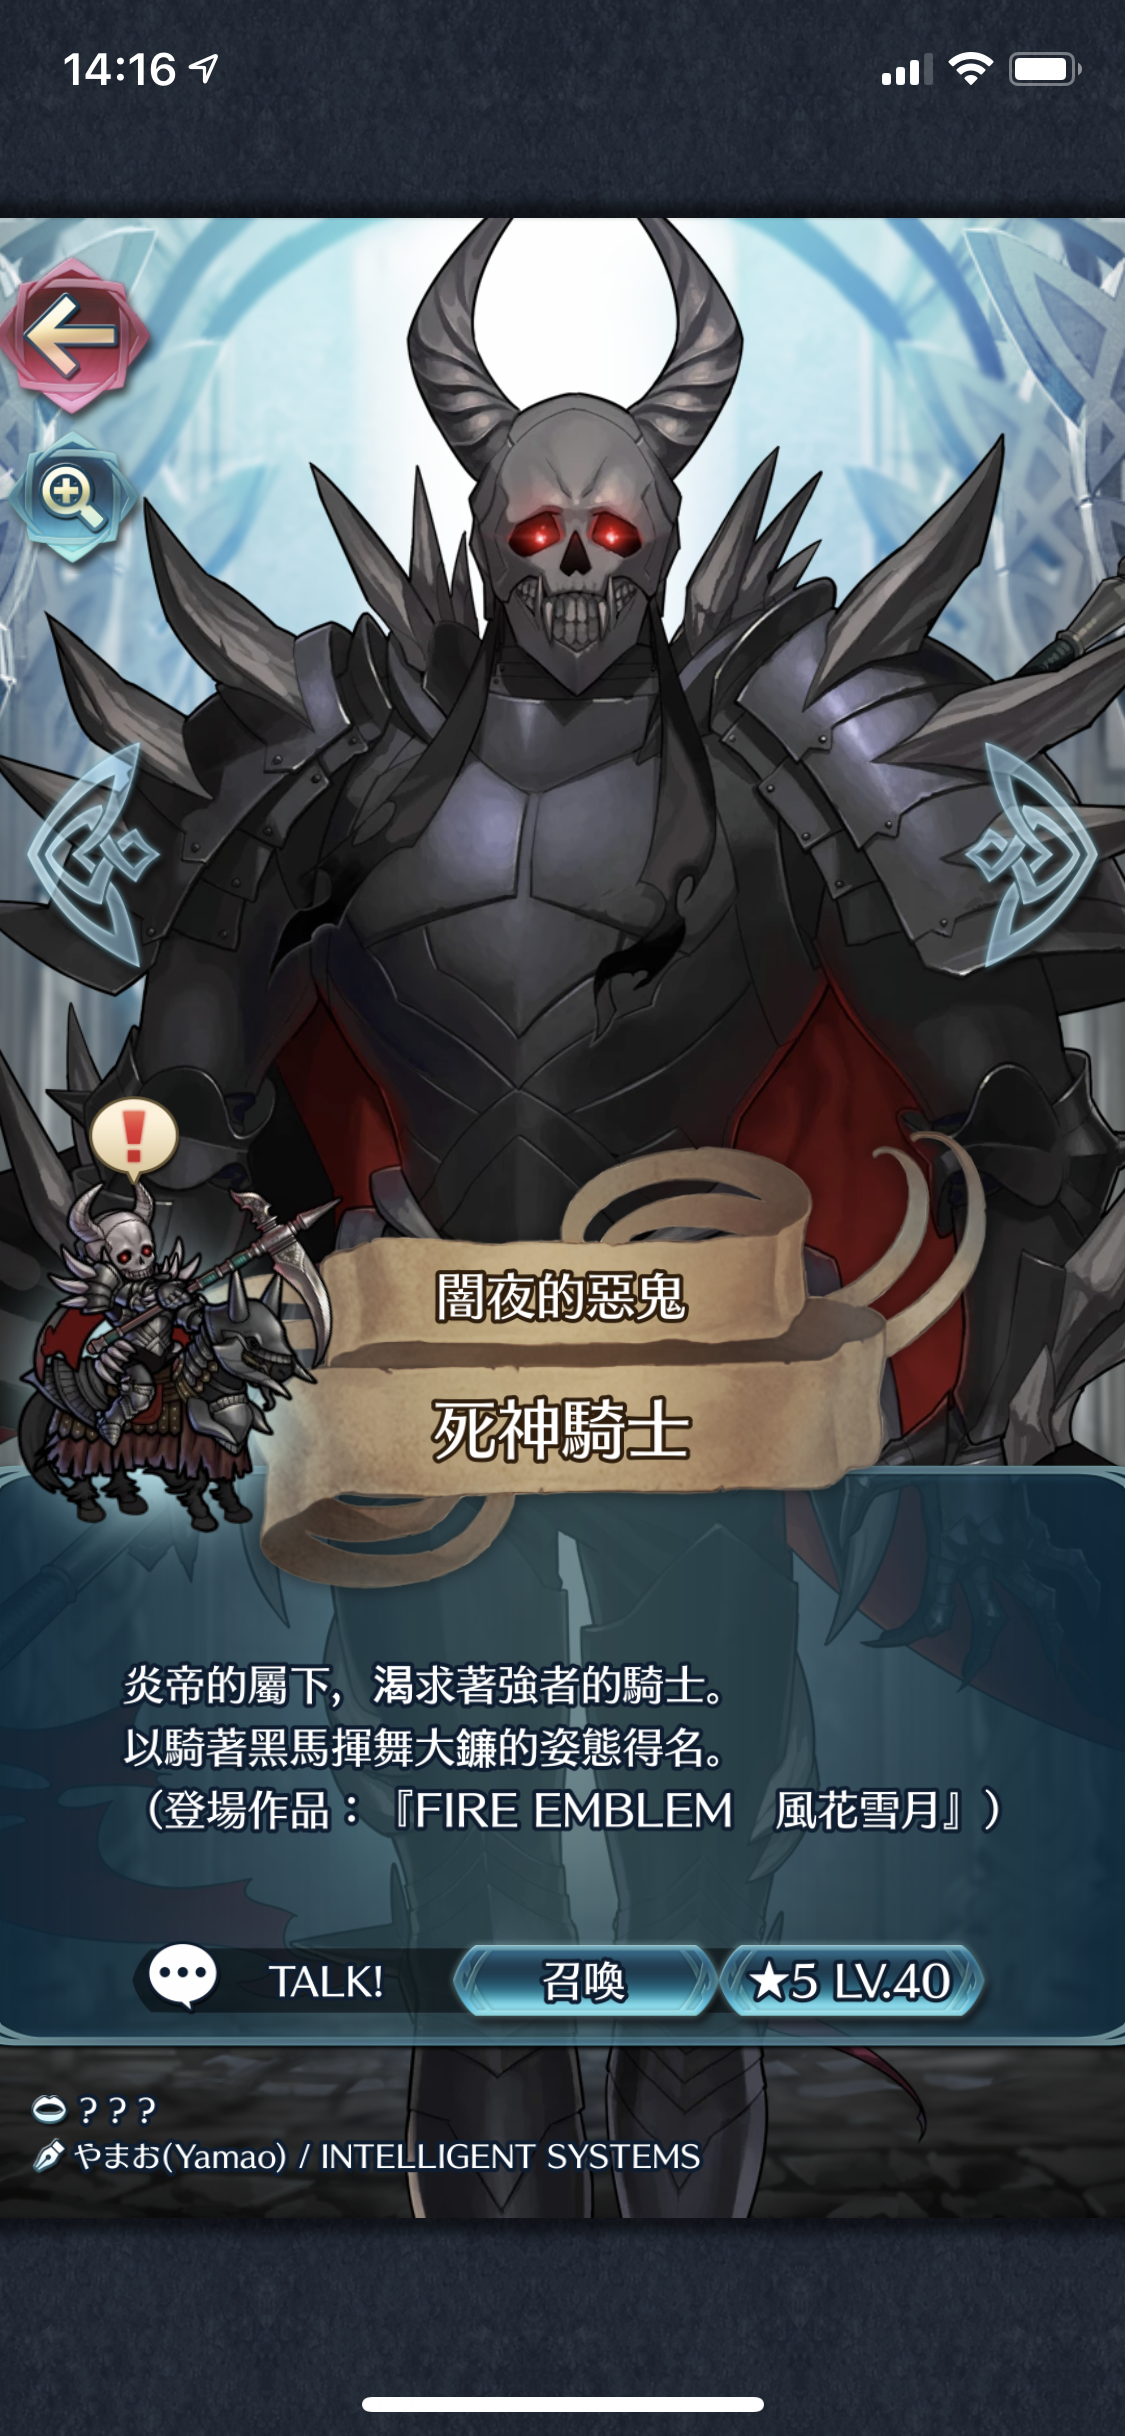 Feh 炎帝